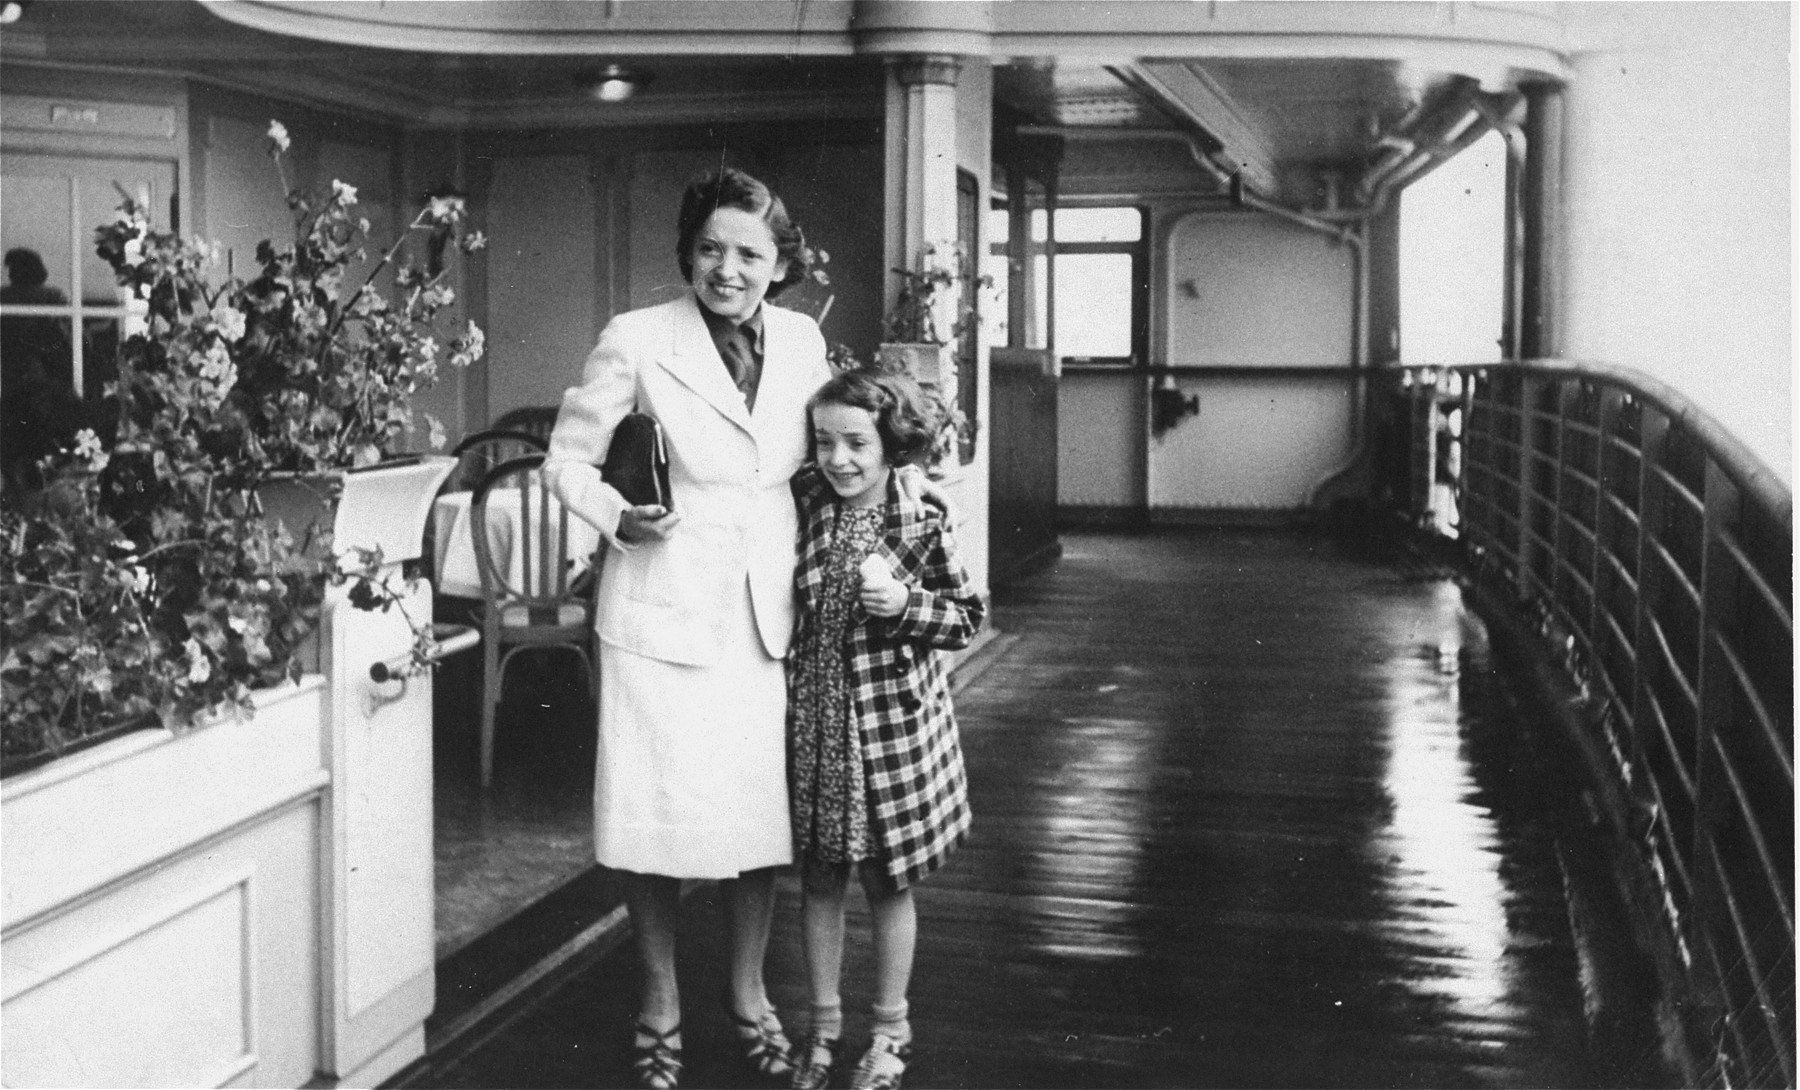 Elly Reutlinger and her nine-year-old daughter Renate, passengers on the MS St. Louis, pose near a dining area on the ship.